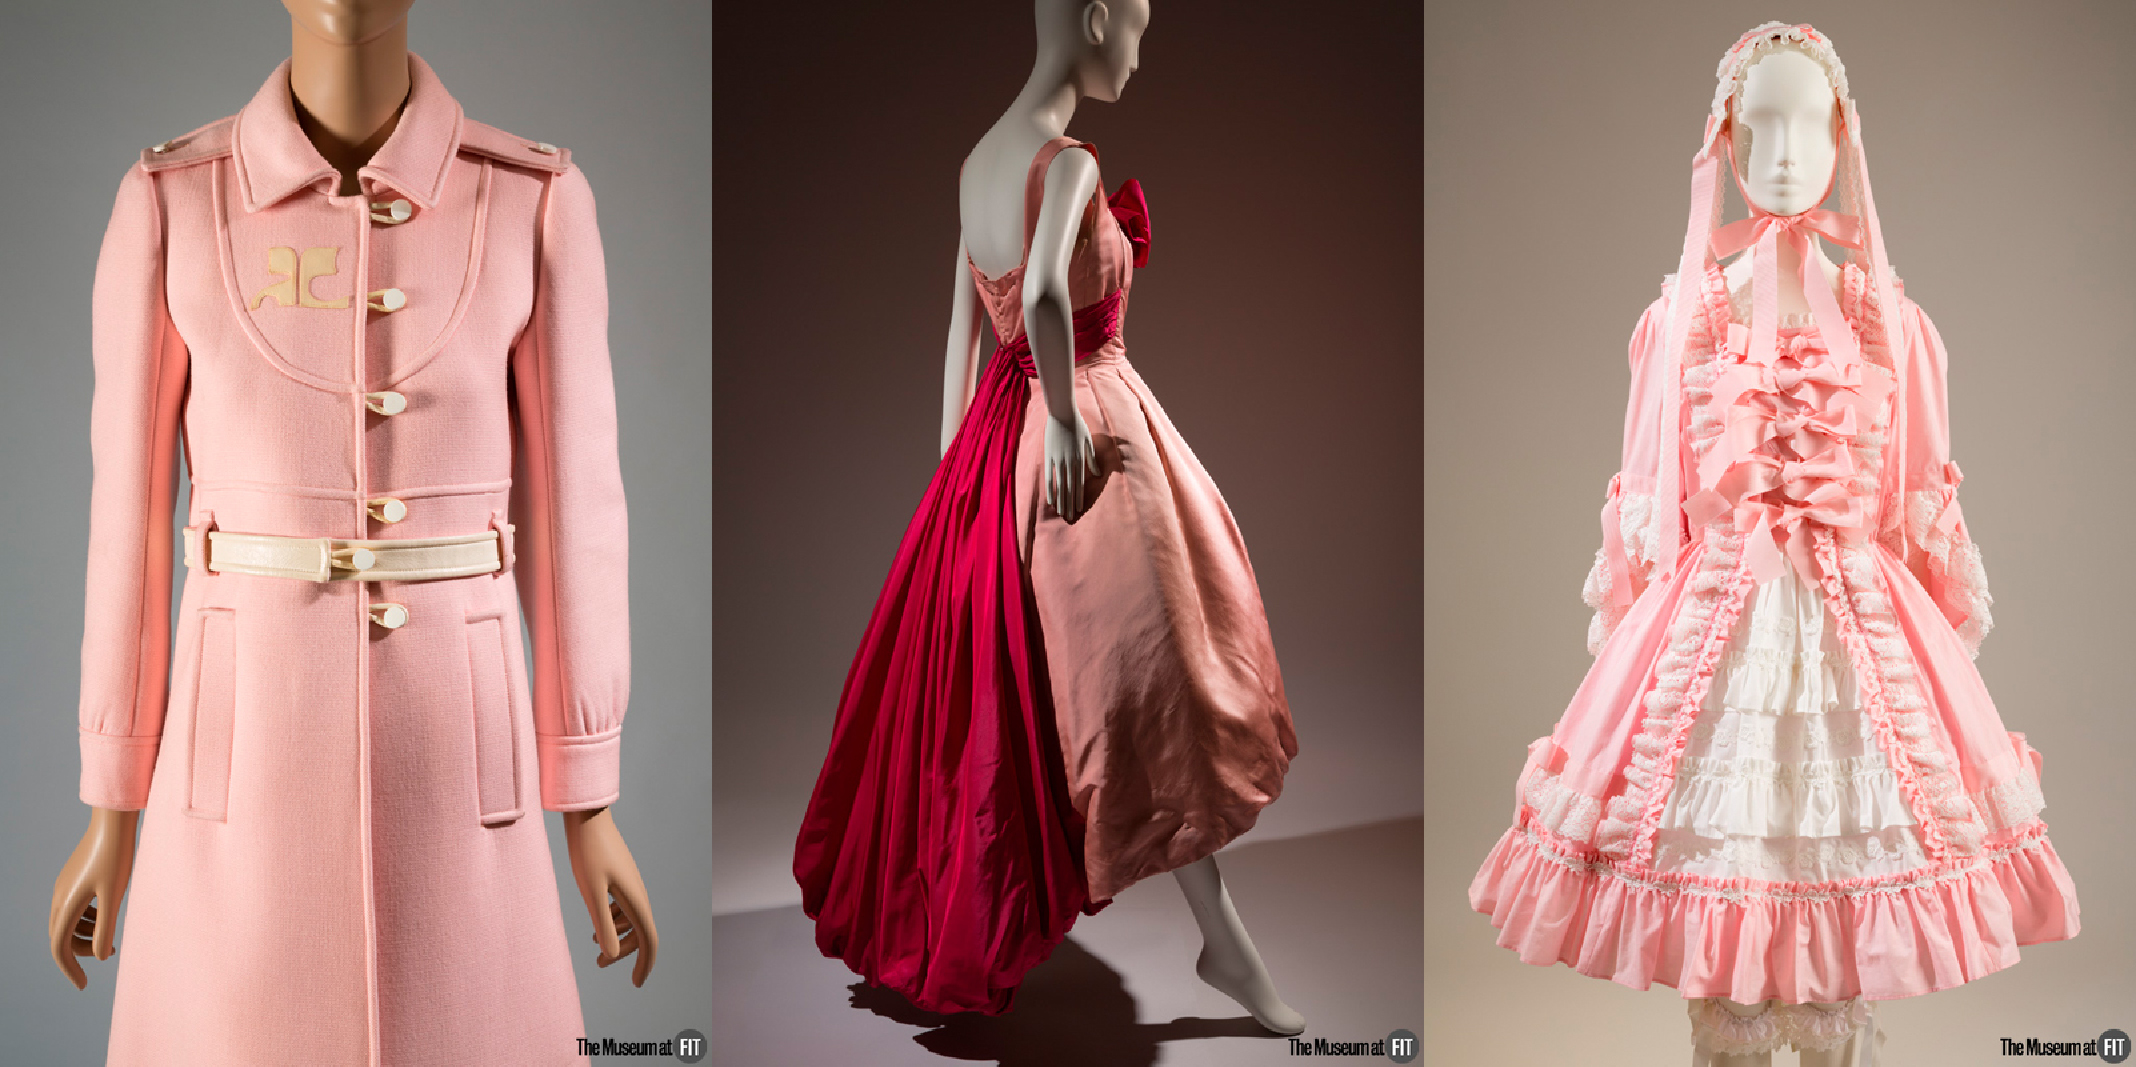 Courrèges coat - 1967, France, gift of Mrs. Phillip Schwartz. Evening dress - Circa 1954, USA, gift of Virginia Pope. Baby, the Stars Shine Bright ensemble - 2009, Japan, museum purchase.